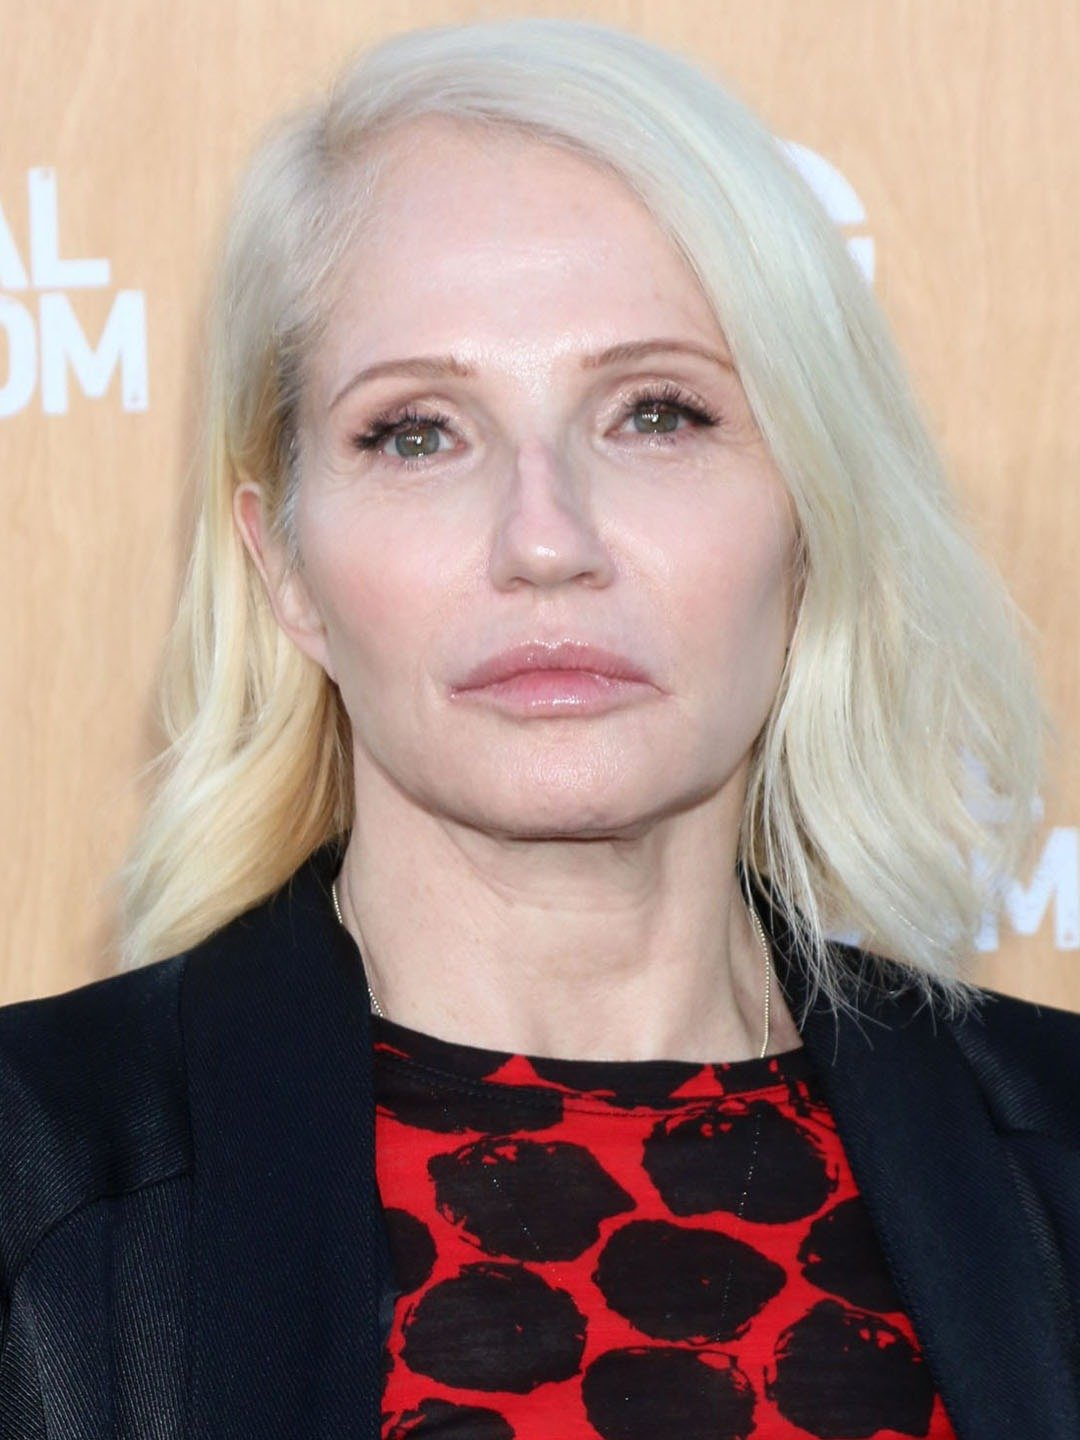 How tall is Ellen Barkin?